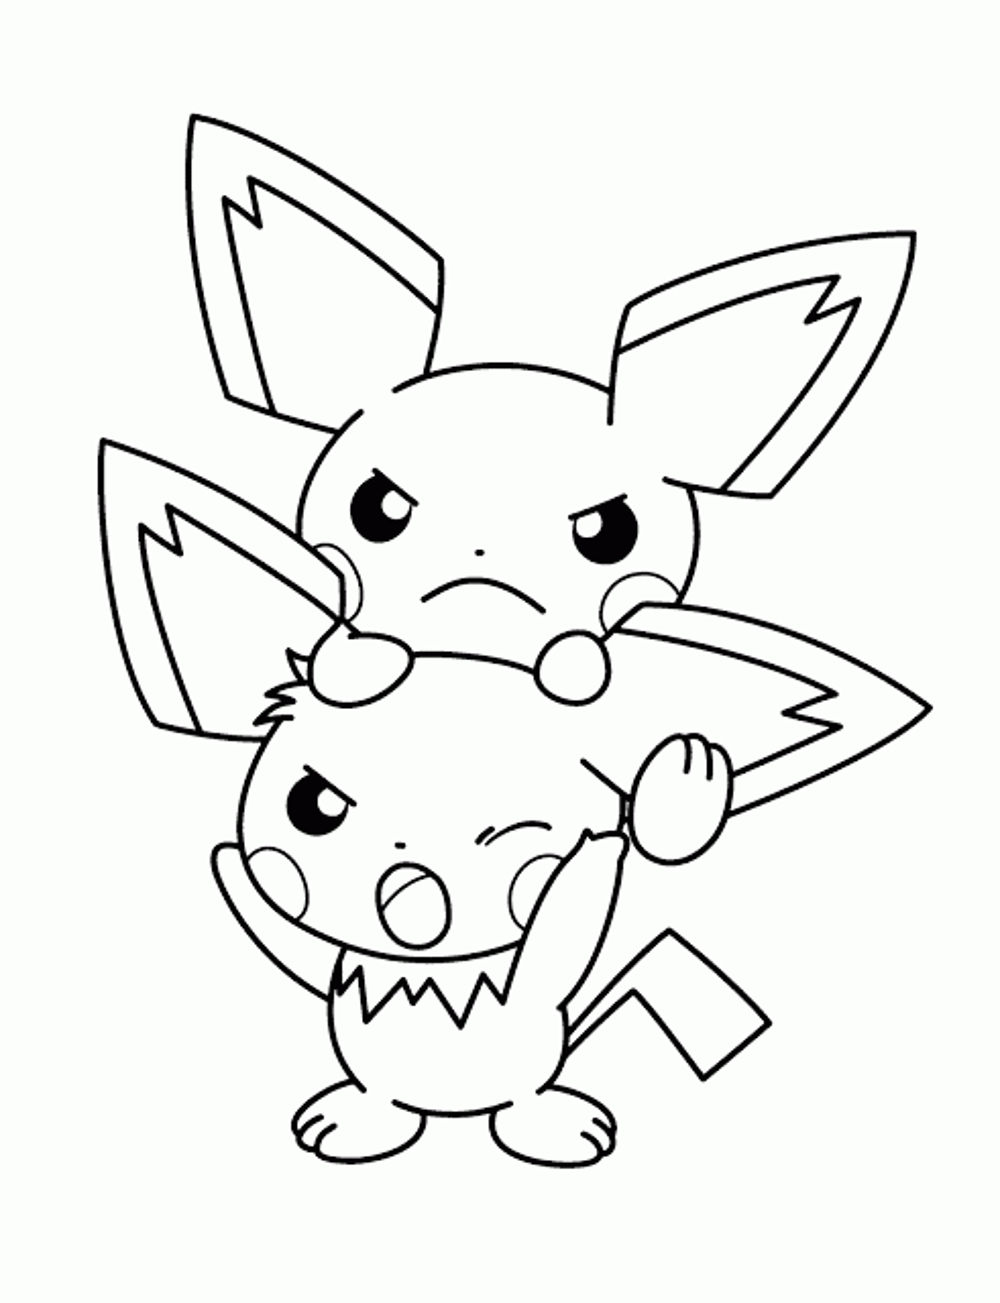 Uncategorized Pokemon Eevee Coloring Pages pokemon coloring pages eevee bestappsforkids com x